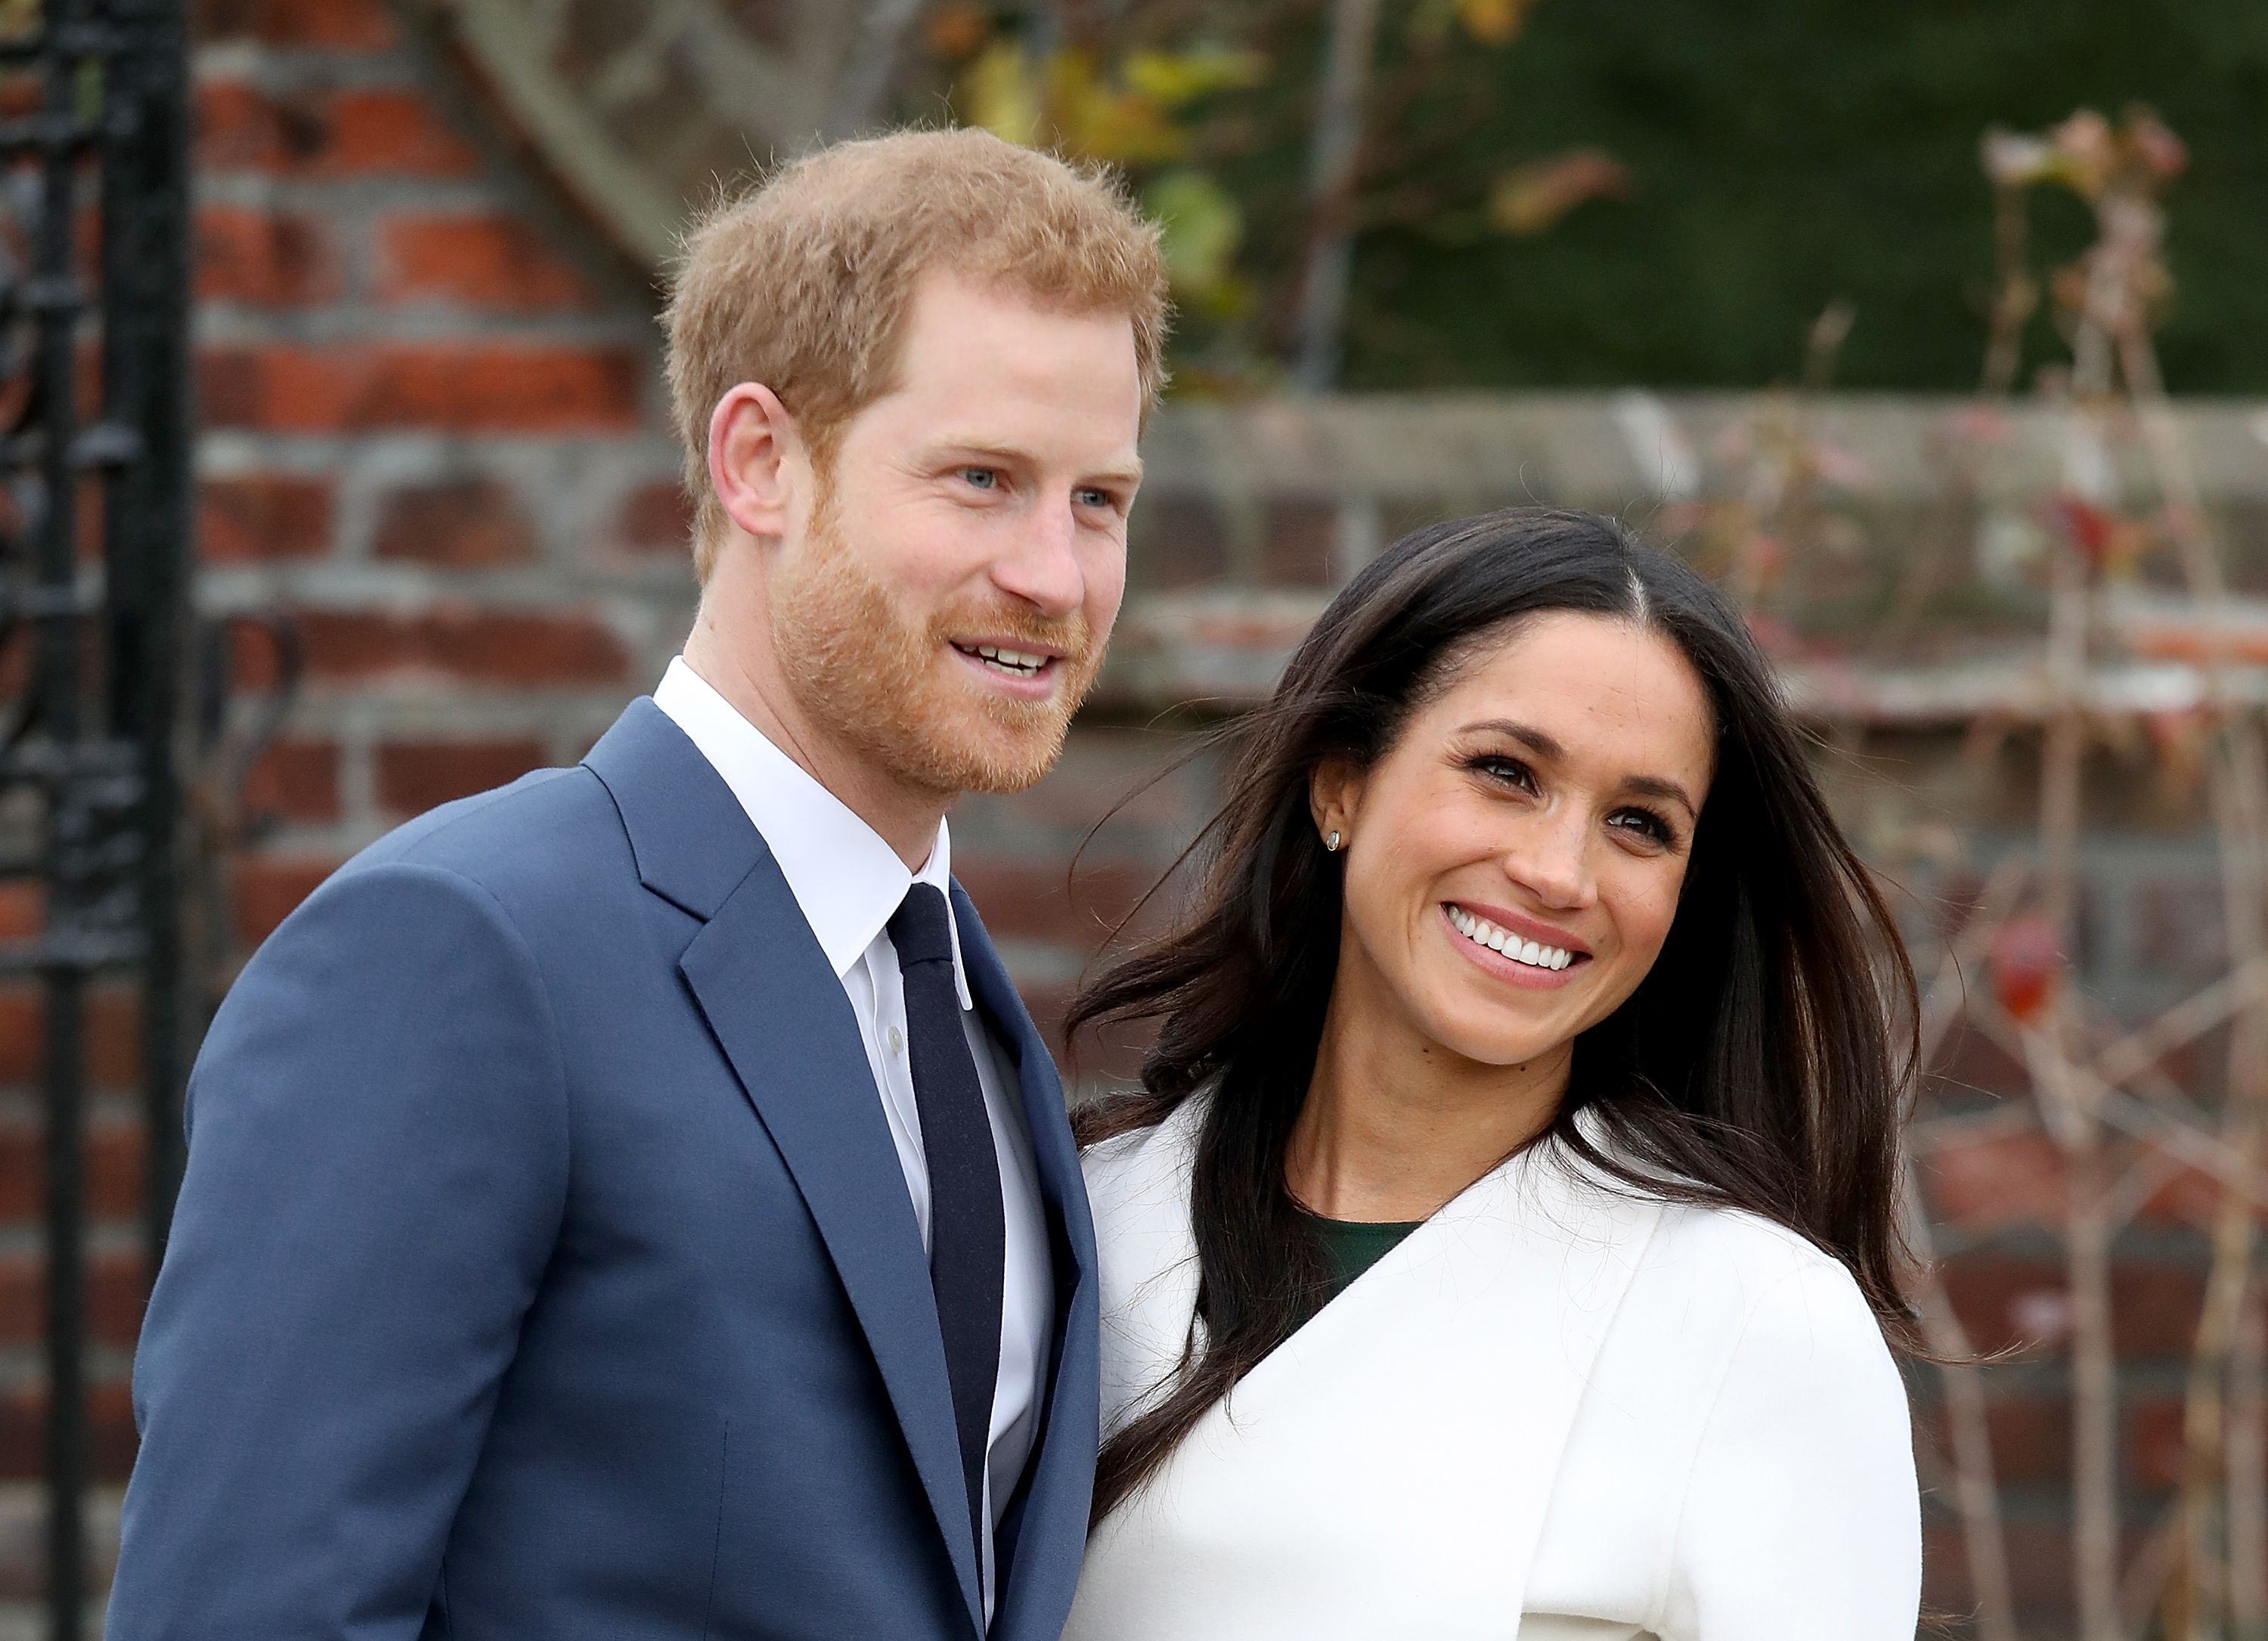 Prince Harry and Meghan Markle at an official photocall to announce their engagement at The Sunken Gardens at Kensington Palace on November 27, 2017   Photo: Getty Images